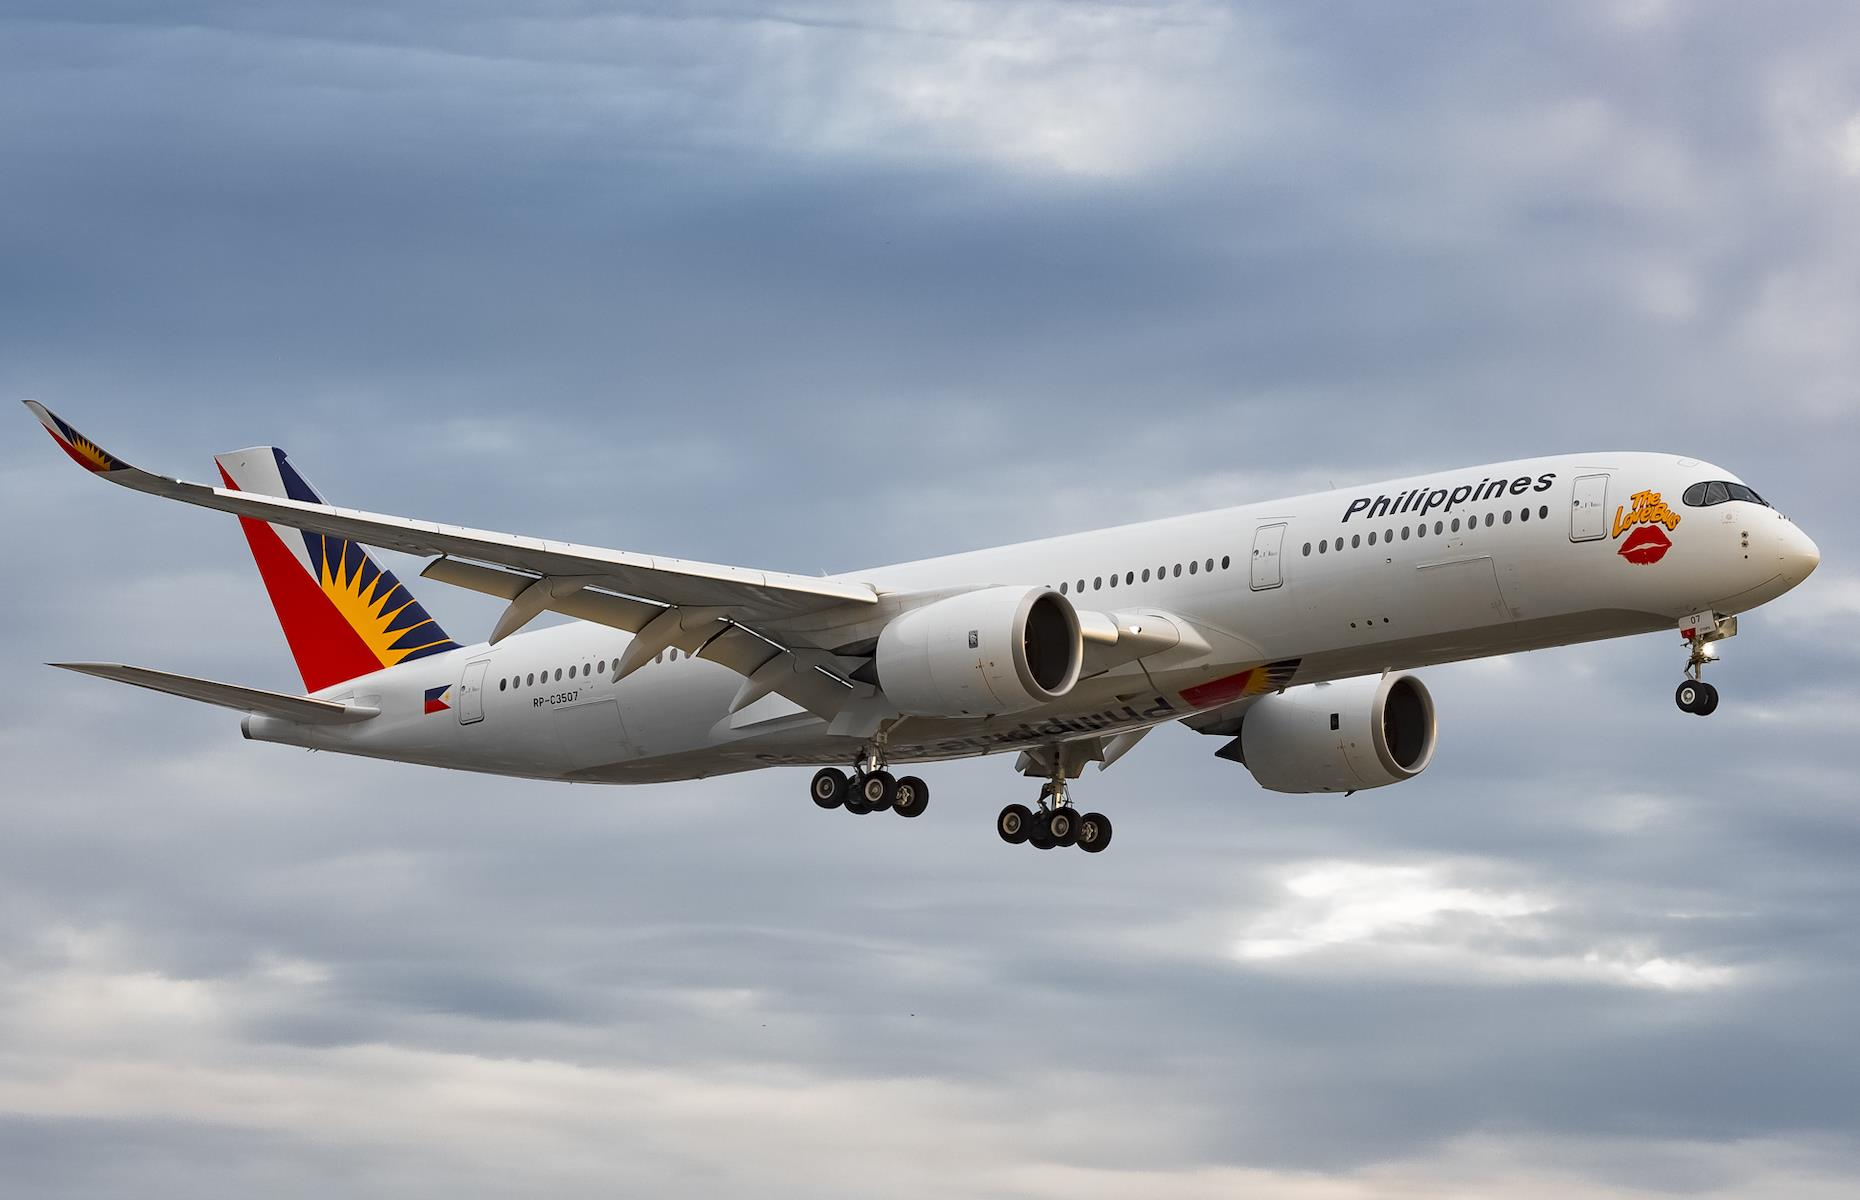 Slide 23 of 35: With more than 70 planes flying across routes between Asia, North America, Europe and the Middle East, Philippine Airlines celebrated its 40th anniversary of its partnership with Airbus in 2019 with a special Love Bus logo on one of itsplanes (pictured). Fittingly the airline received it from the manufacturer on Valentine's Day.  The world's most beautiful planes